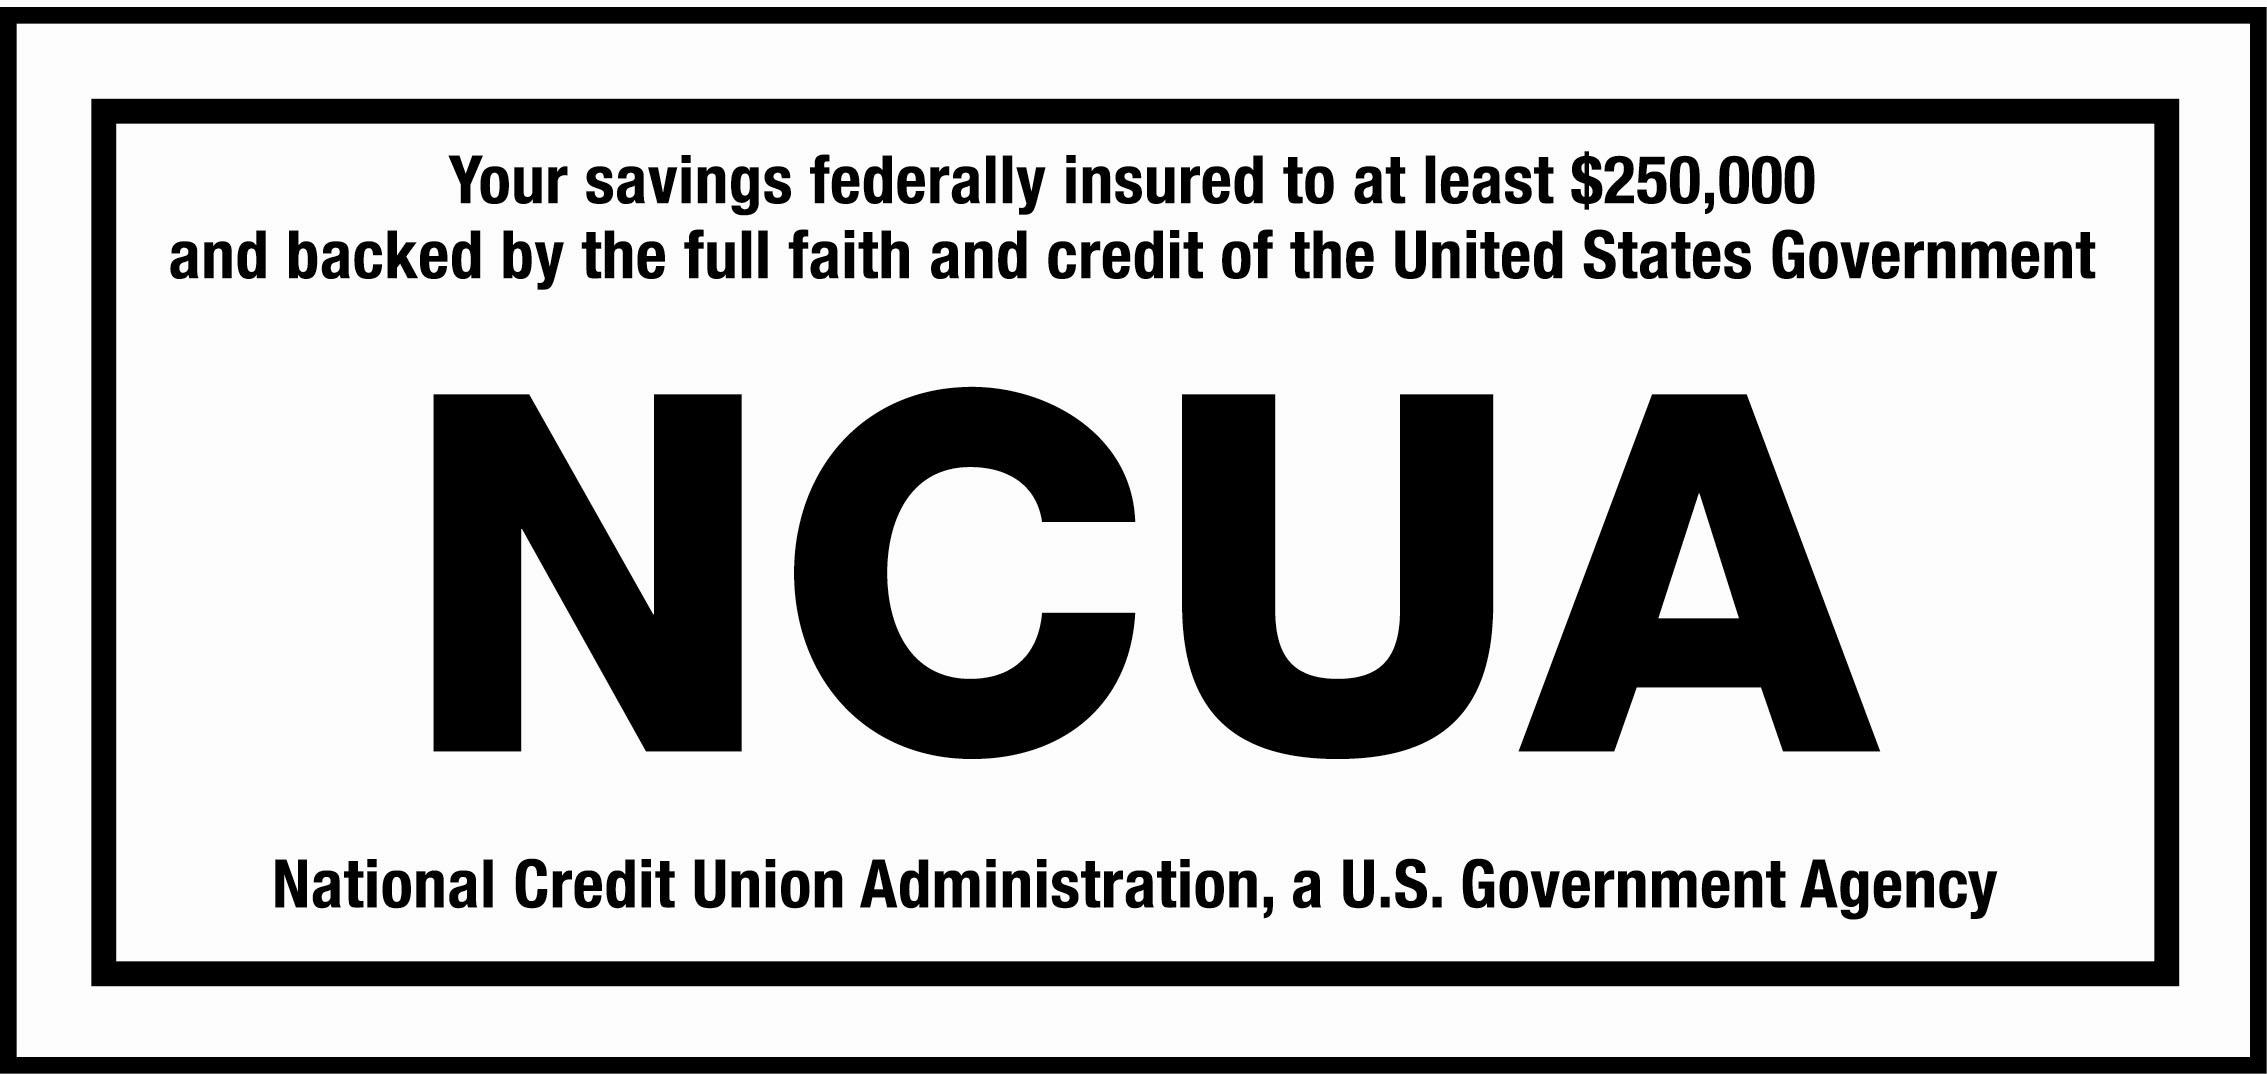 This Credit Union is federally insured by the National Credit Union Administration.